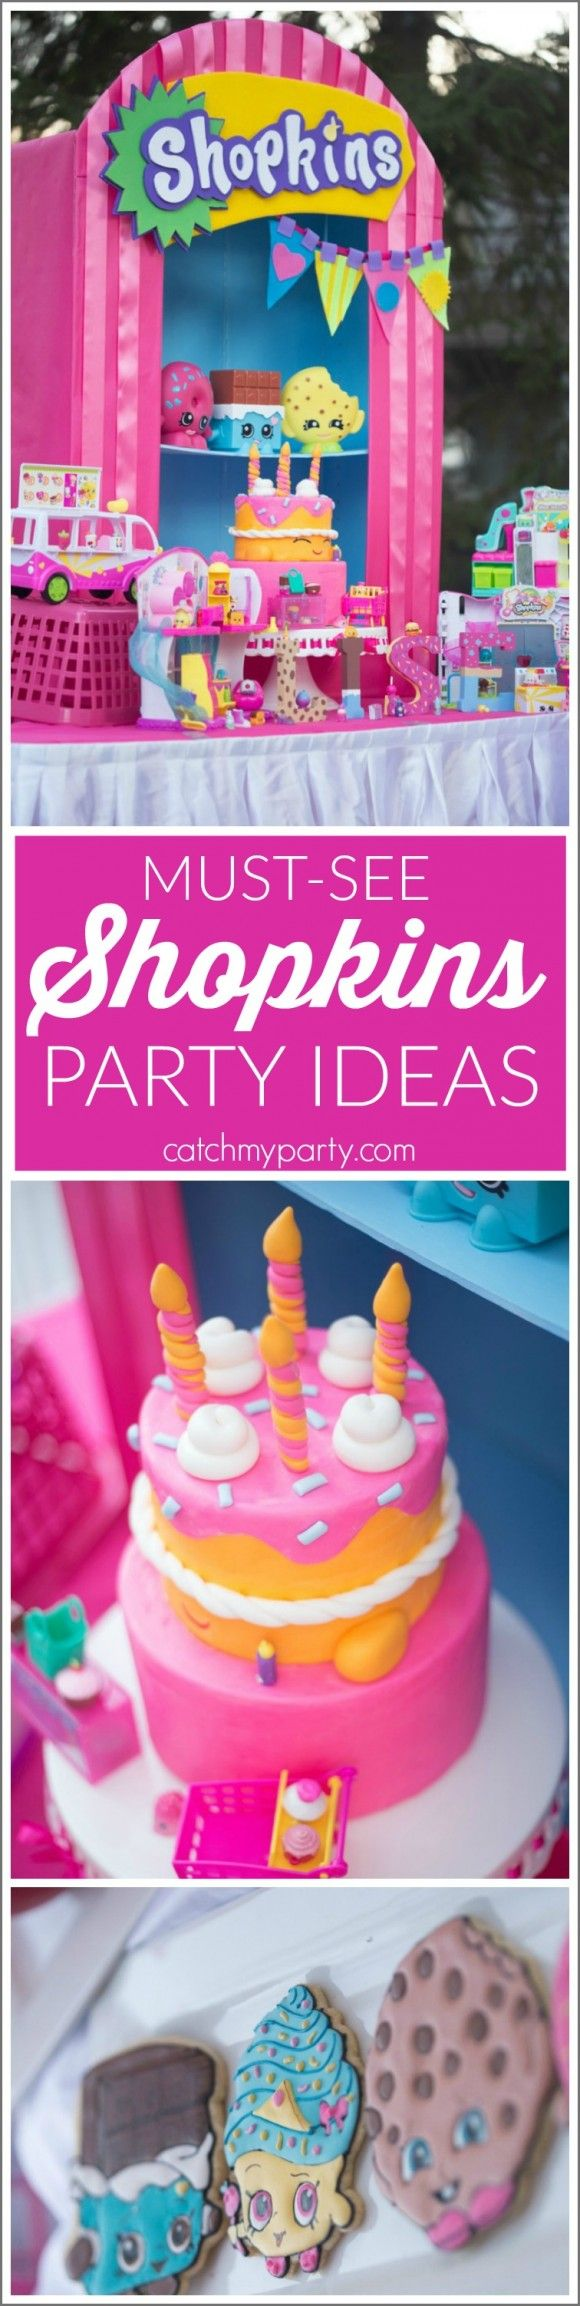 Birthday table decorations for girls - 17 Best Ideas About Girl Birthday Decorations On Pinterest Birthday Decorations Girls Party Decorations And 1st Birthday Girls